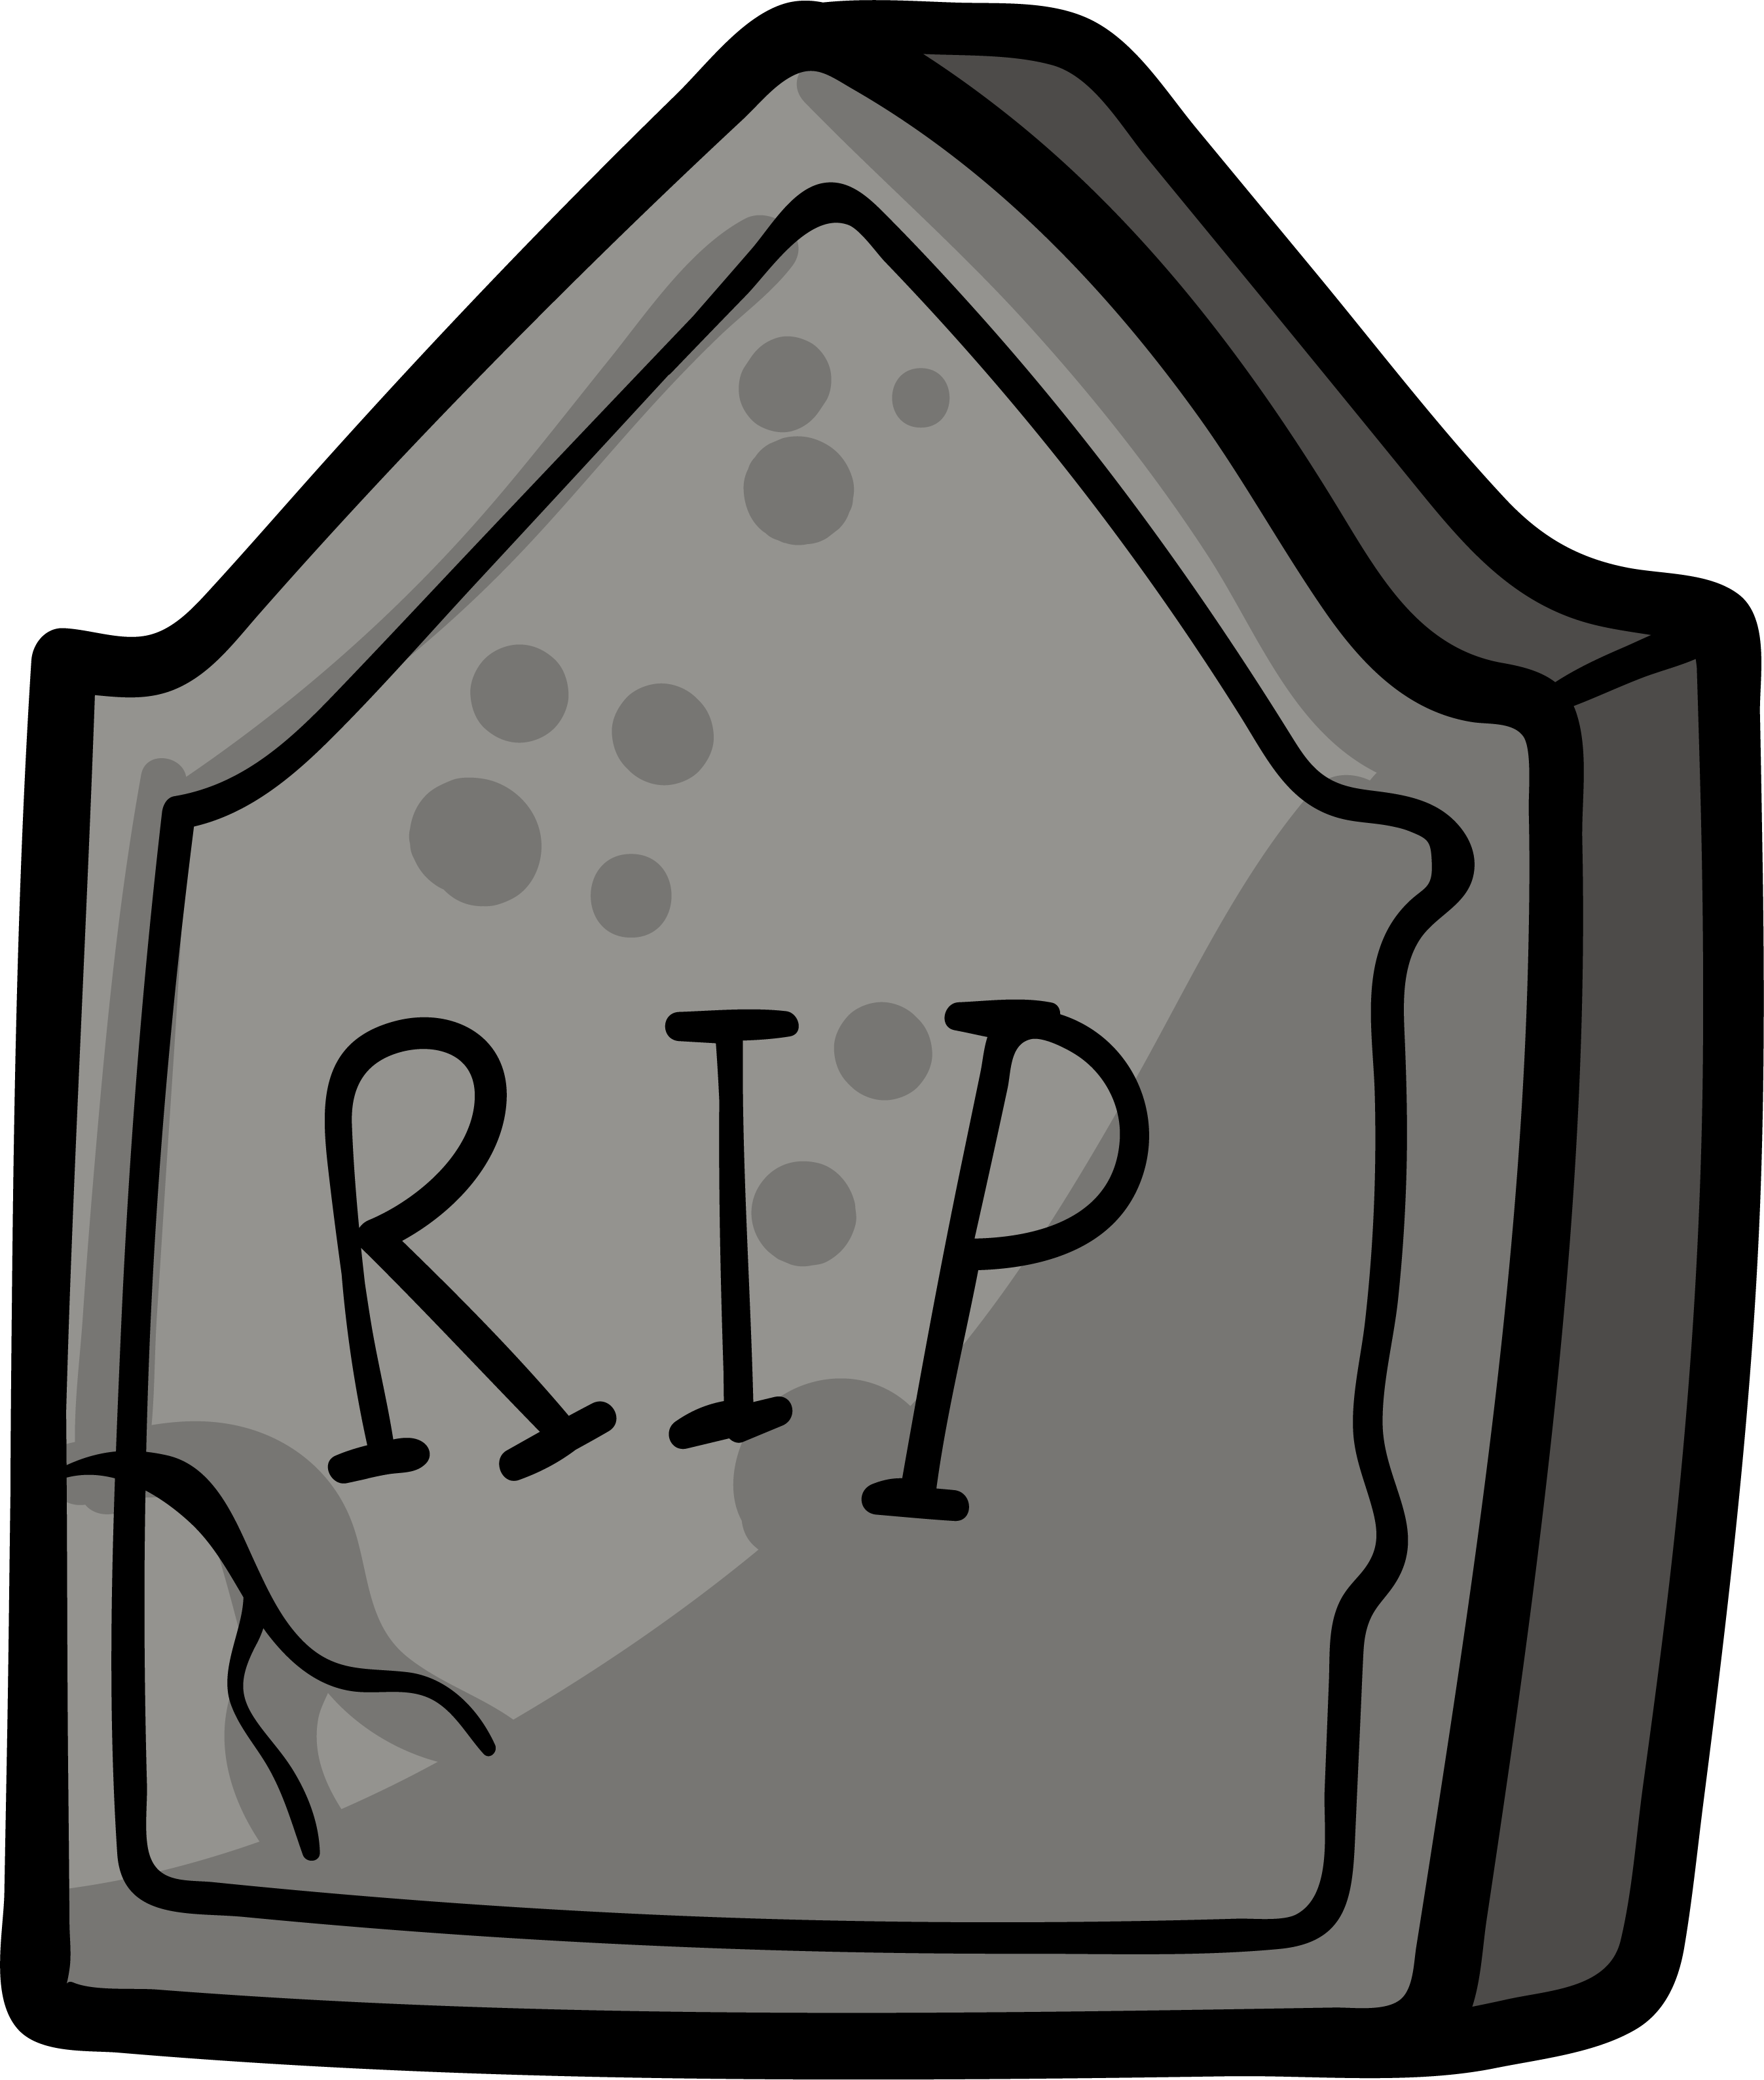 Cartoon gravestone png. Headstone grave drawing tomb